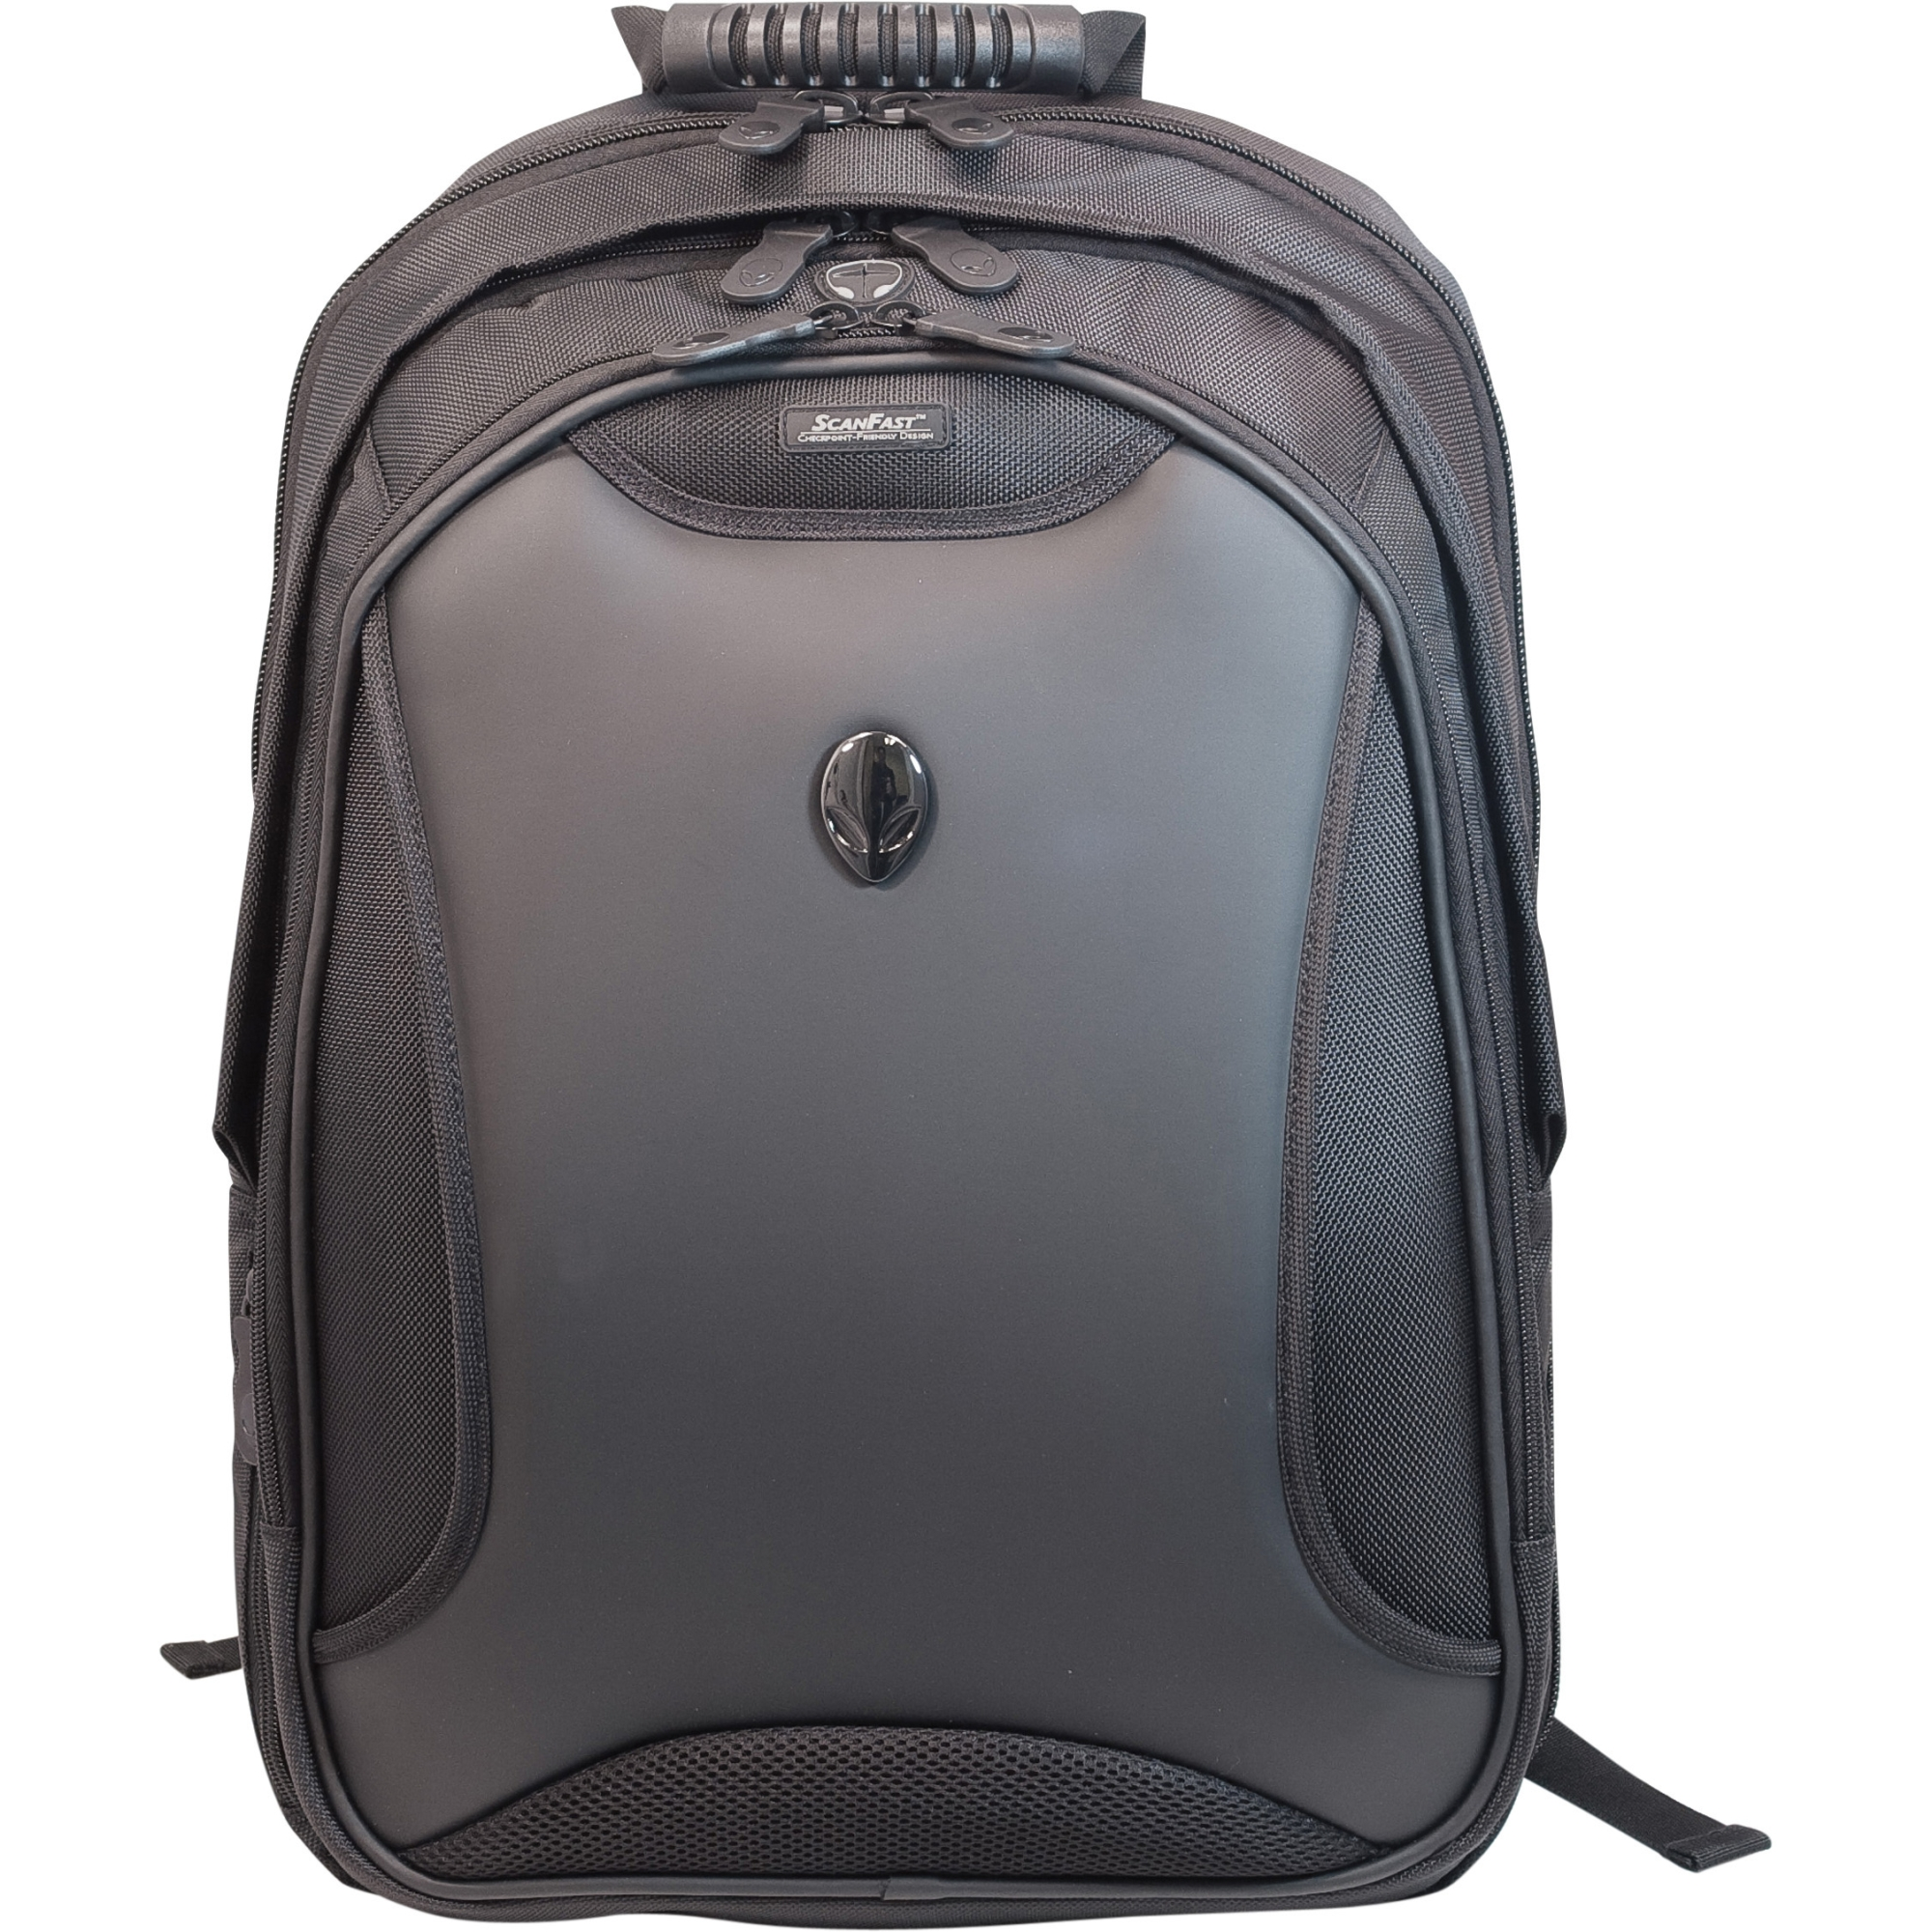 Edge Alienware Orion Backpack (ScanFast) - Backpack - 17.3 inch Screen Support - 20 inch x 15.5 inch x 8 inch - Nylon - Black